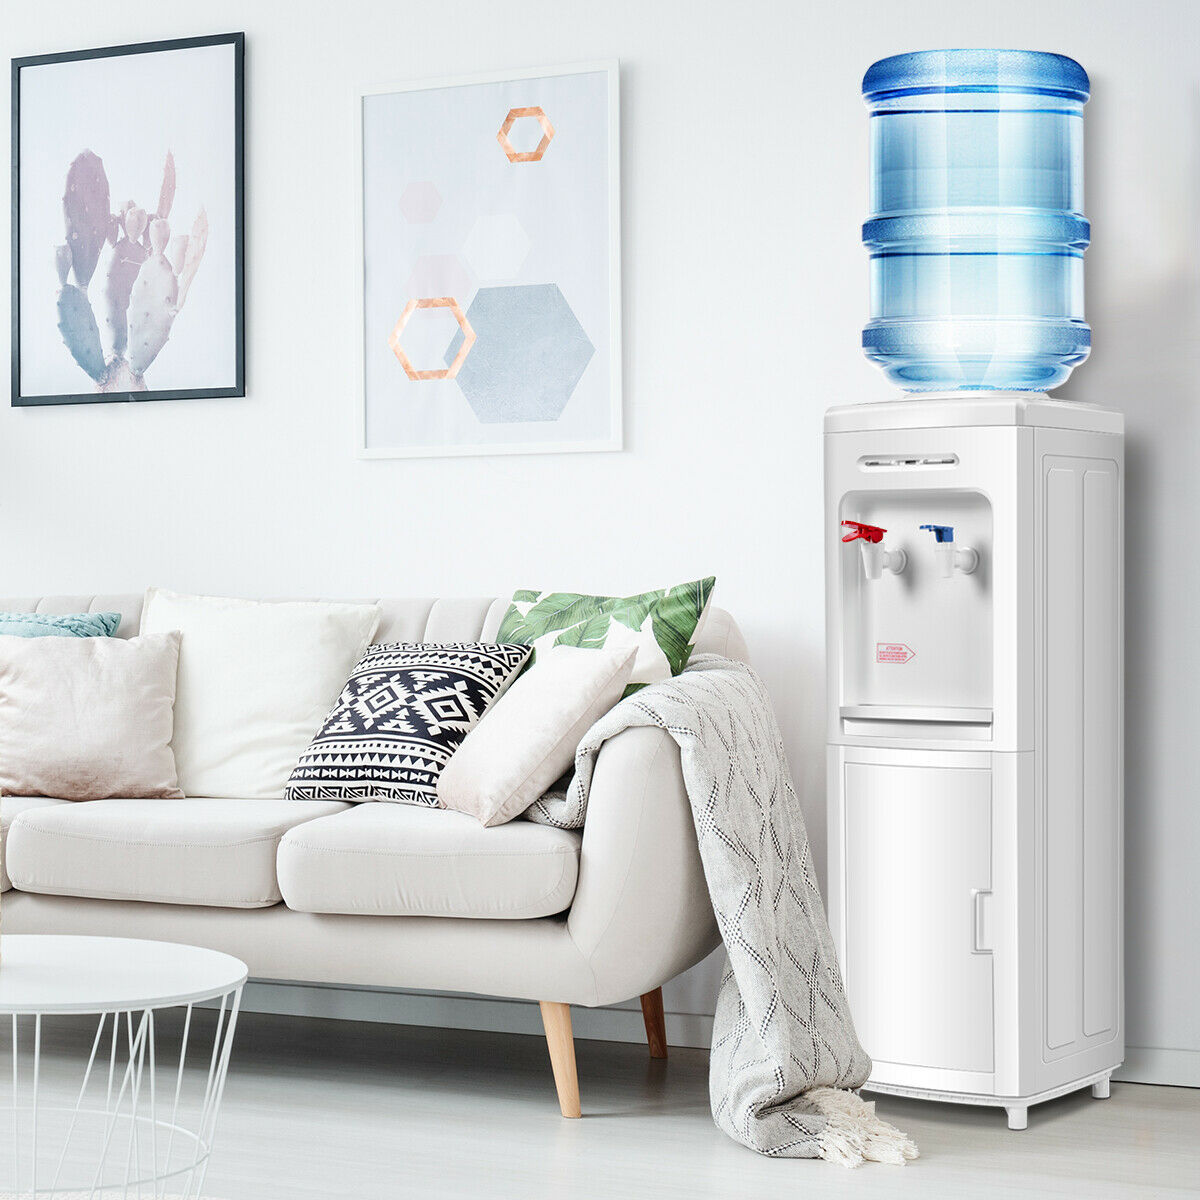 Water Dispenser 5 Gallon Bottle Load Electric Primo Home ...